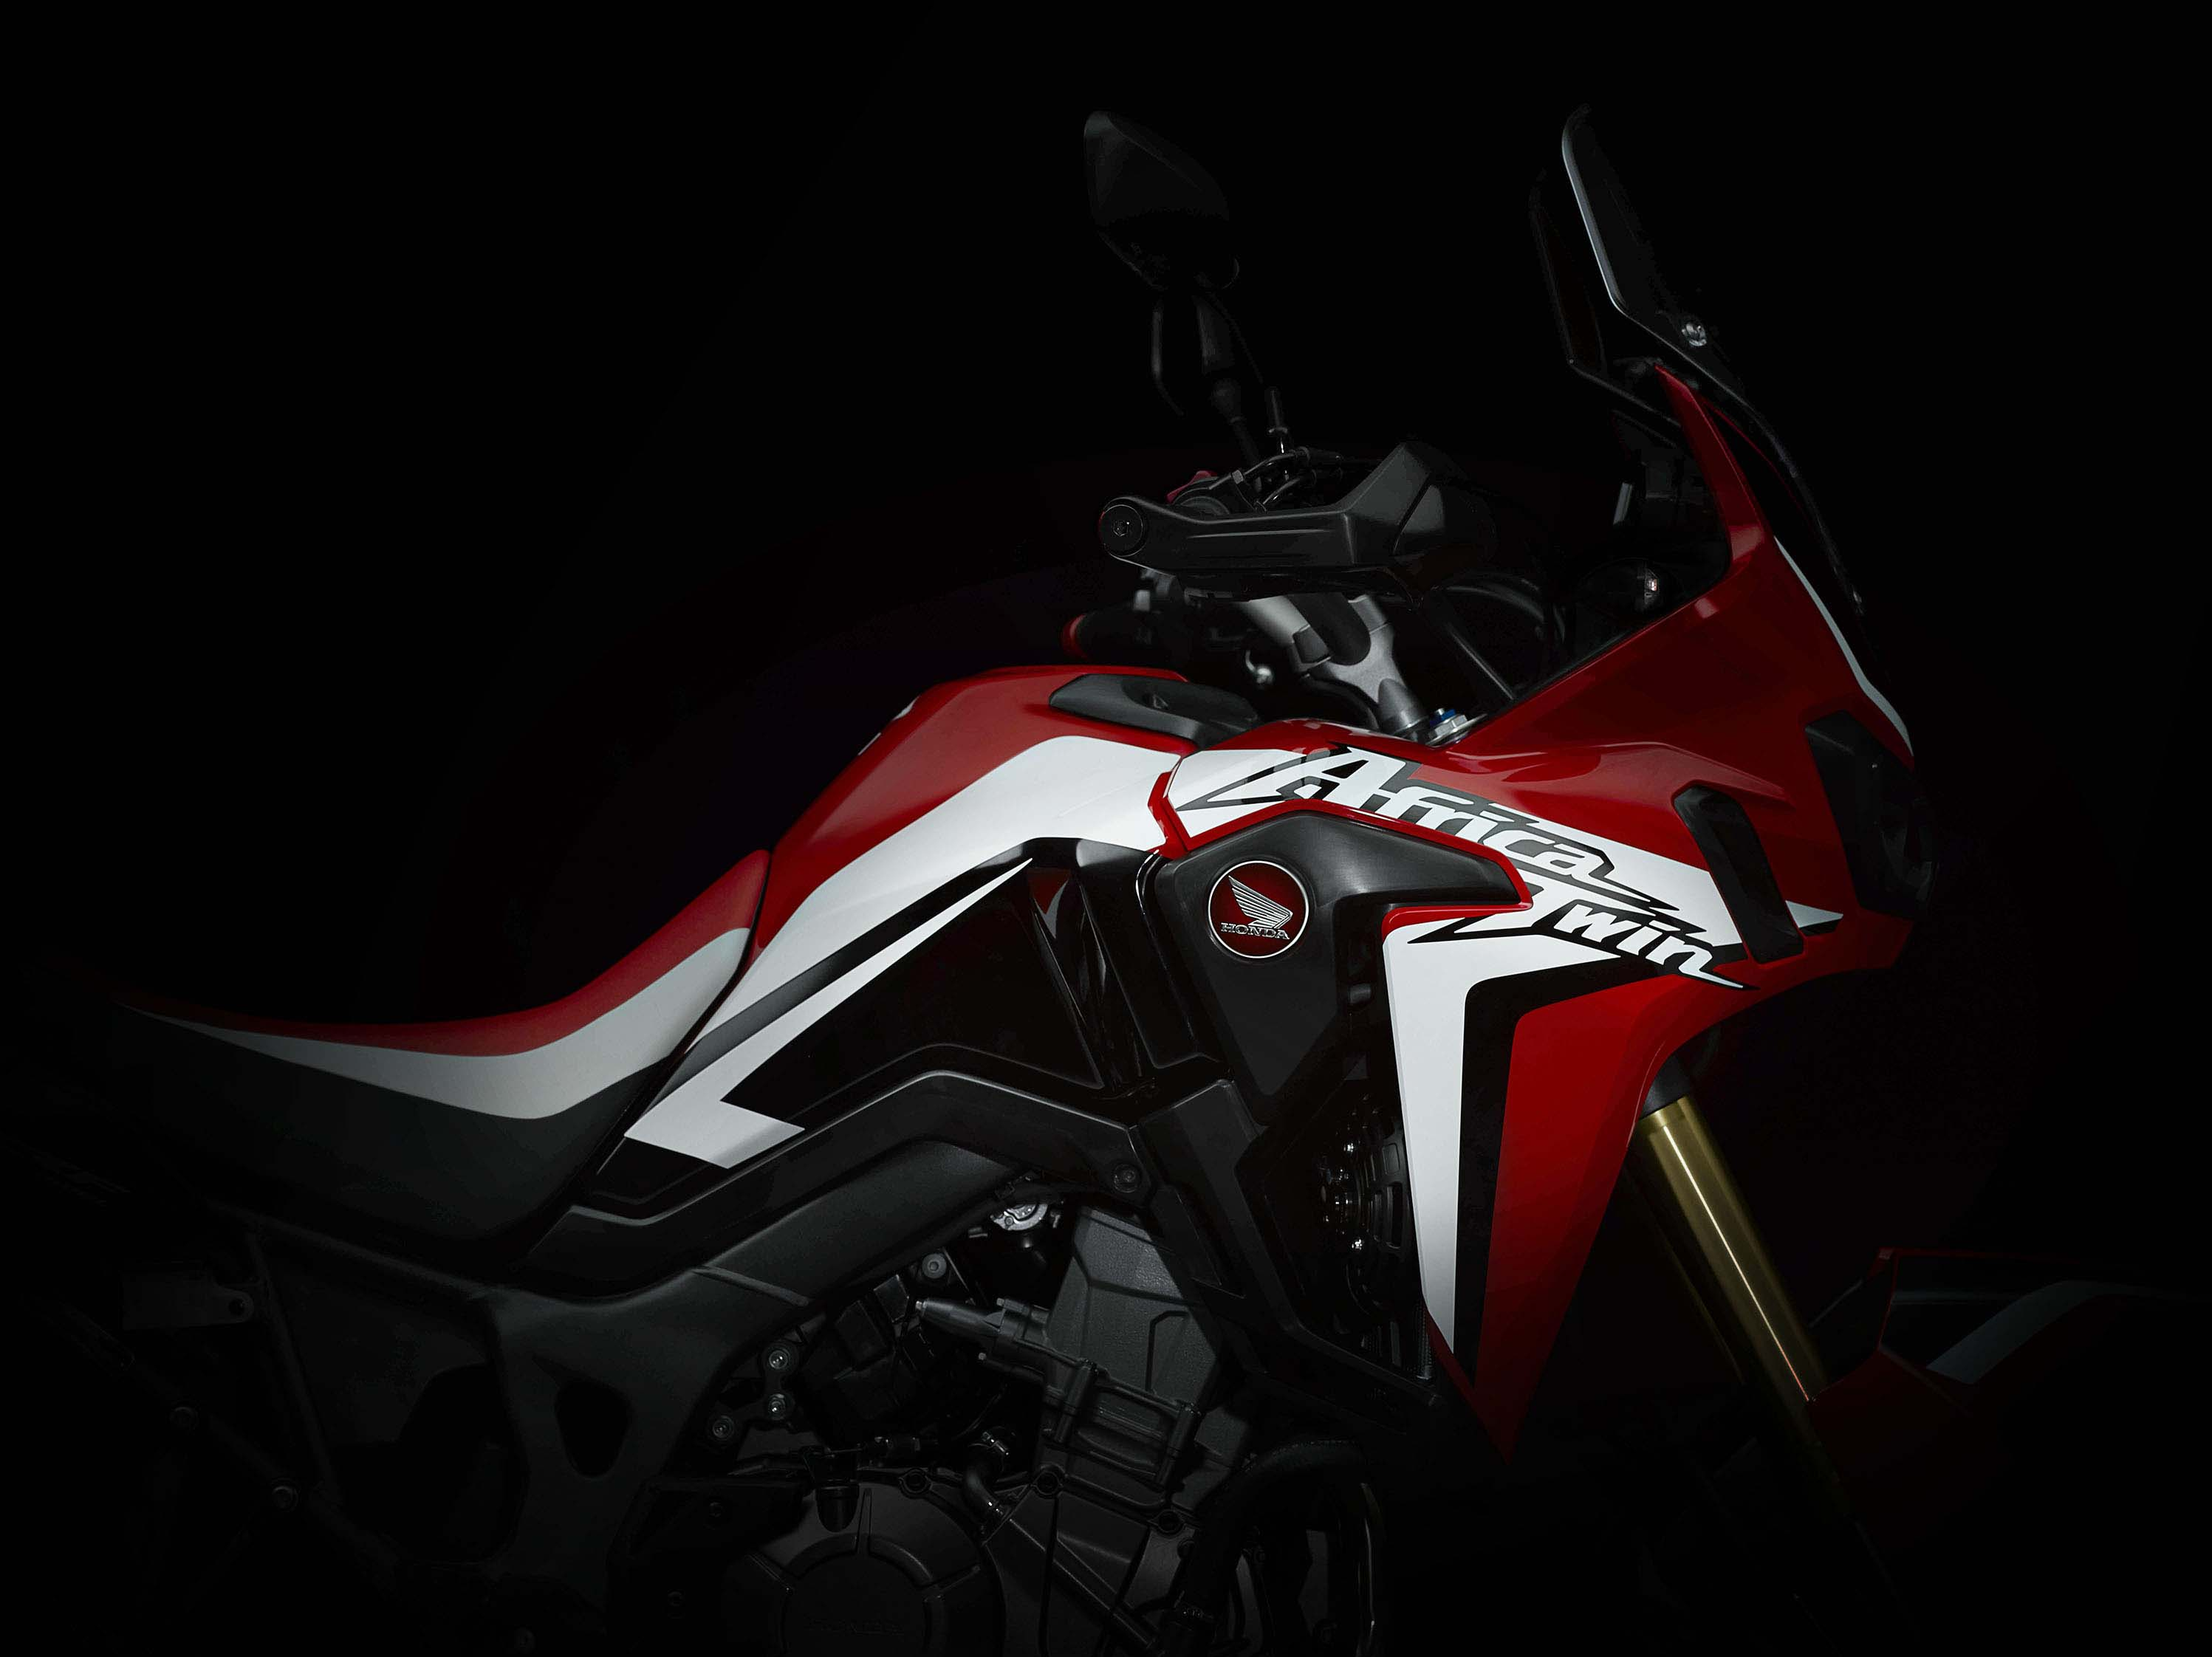 Honda Africa Twin Confirmed